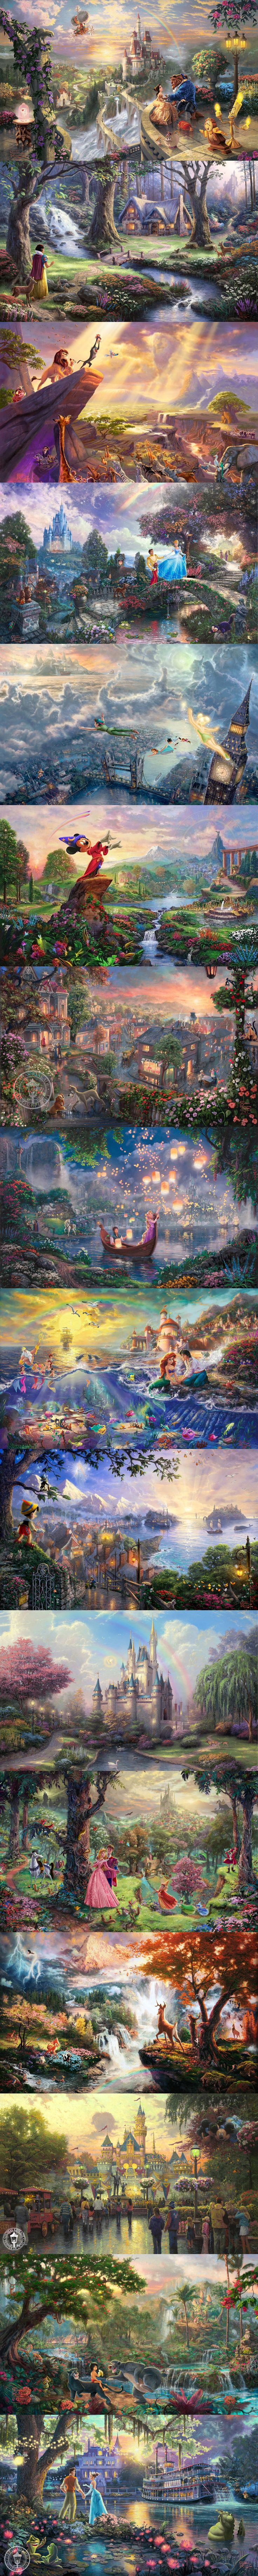 Disney Dreams Collection By Thomas Kinkade. I have some Of these in puzzle form